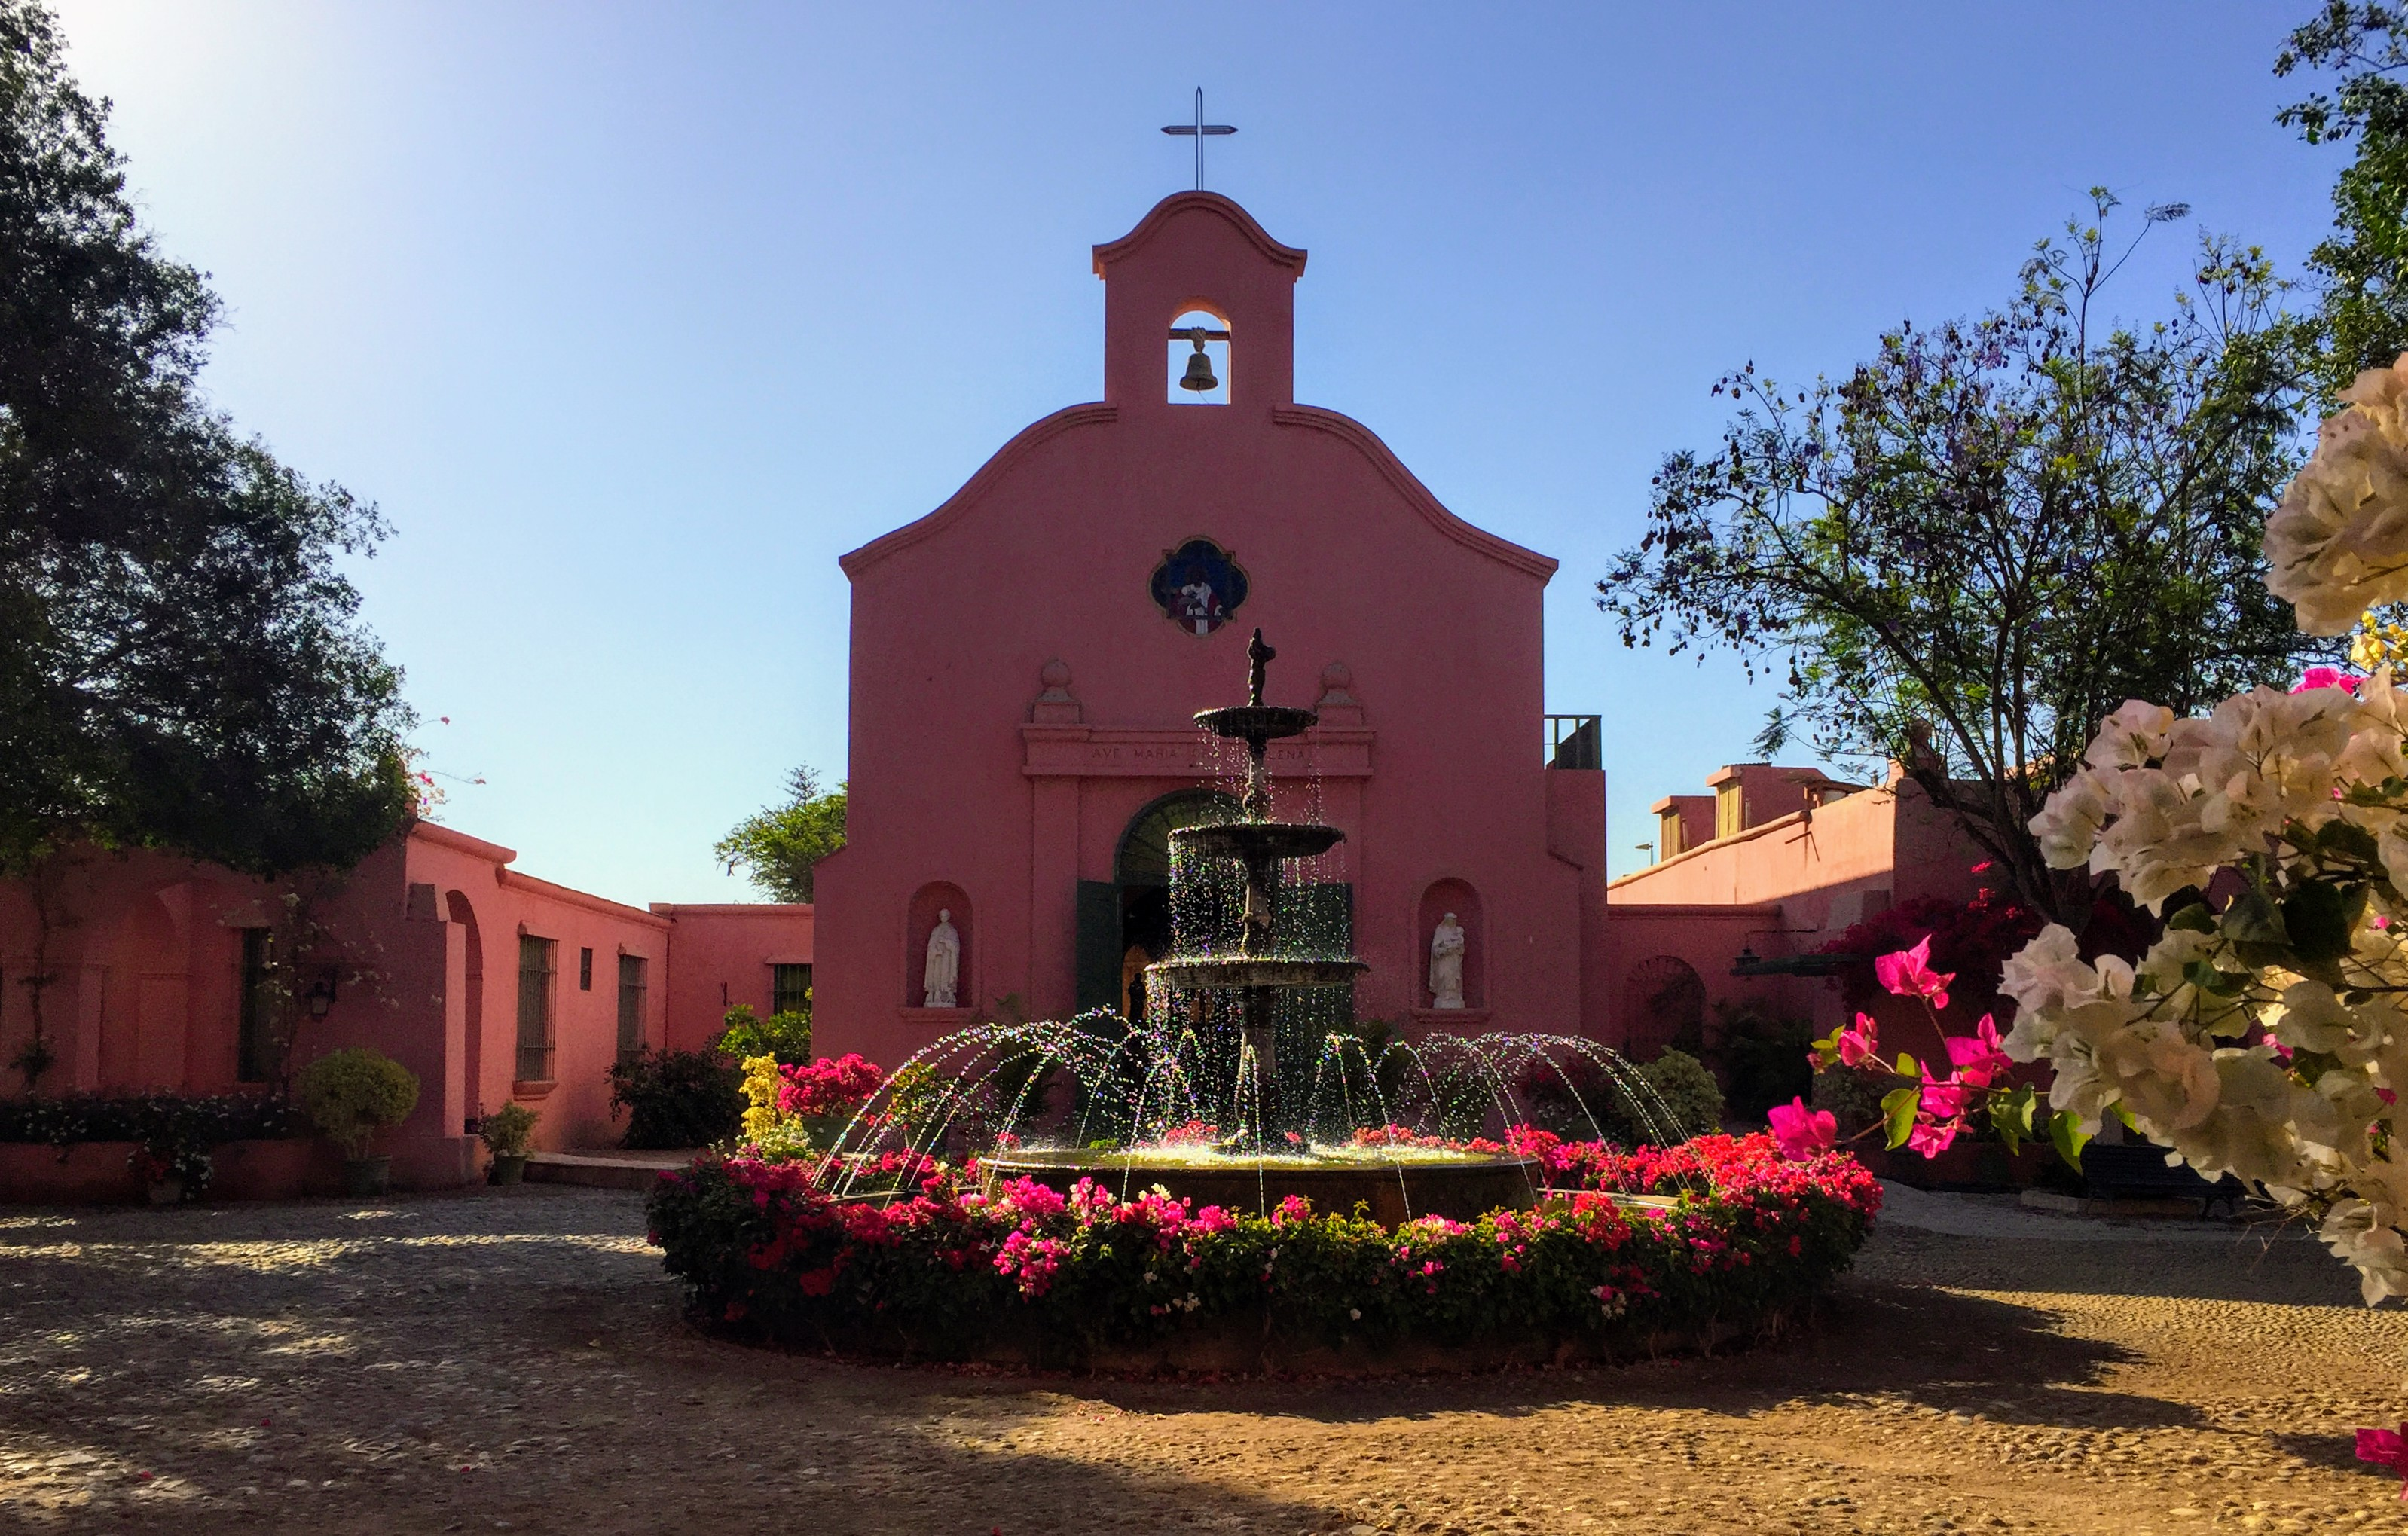 Tacama Winery, the oldest winery in Peru